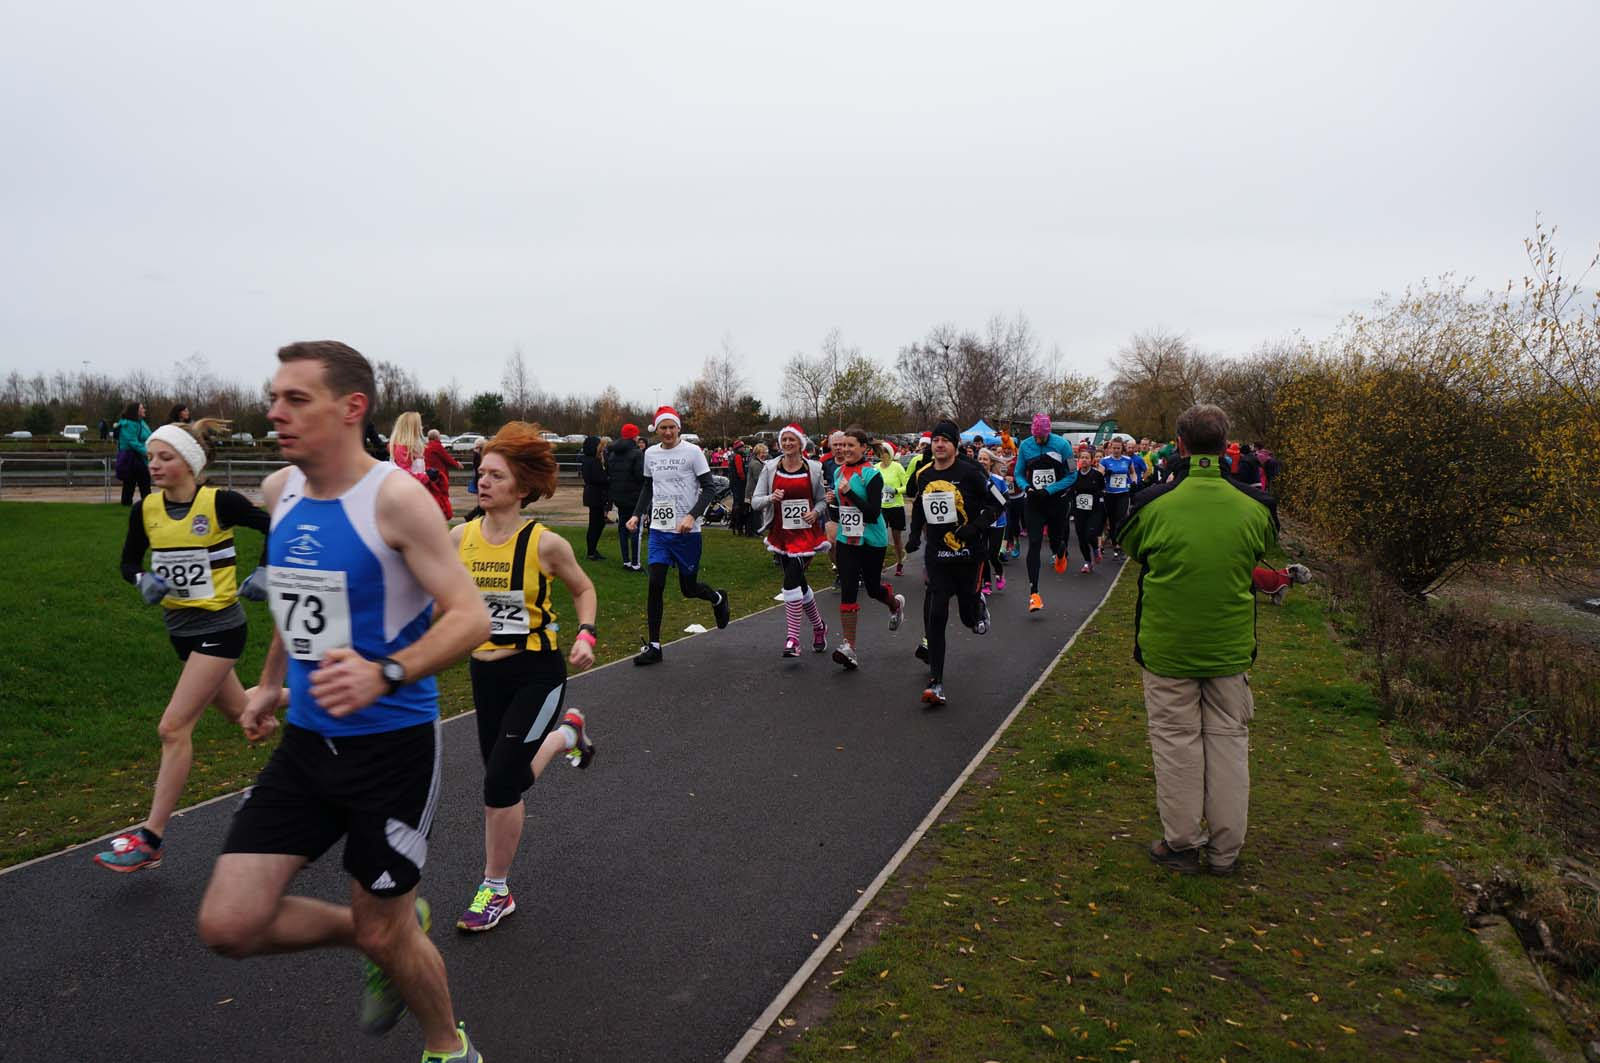 The Chasewater Pudding Dash